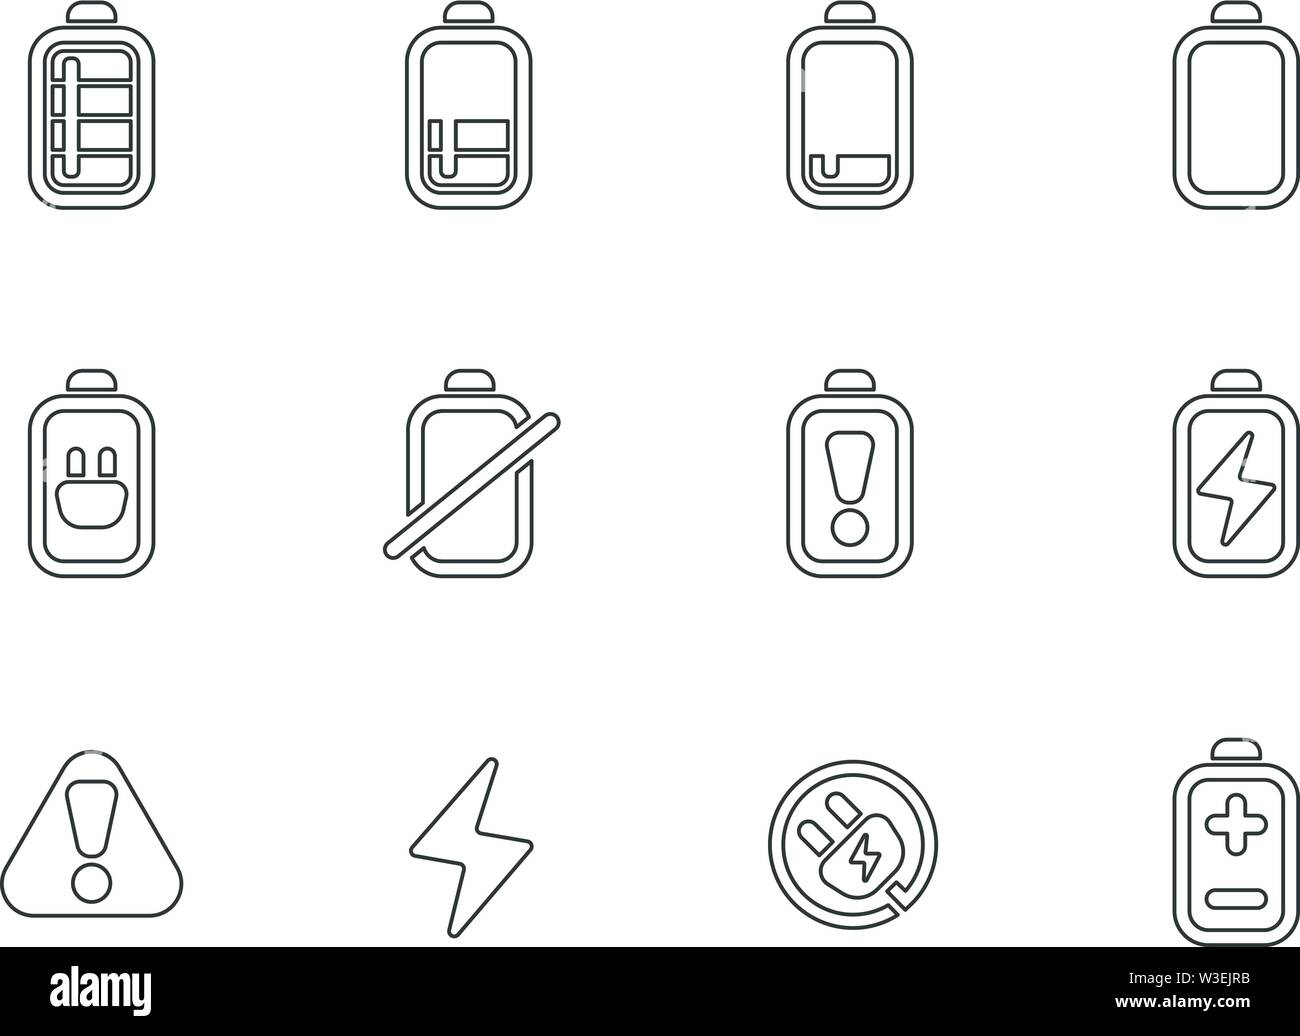 Battery line icons set isolated for user interface design. vector illustration - Stock Image